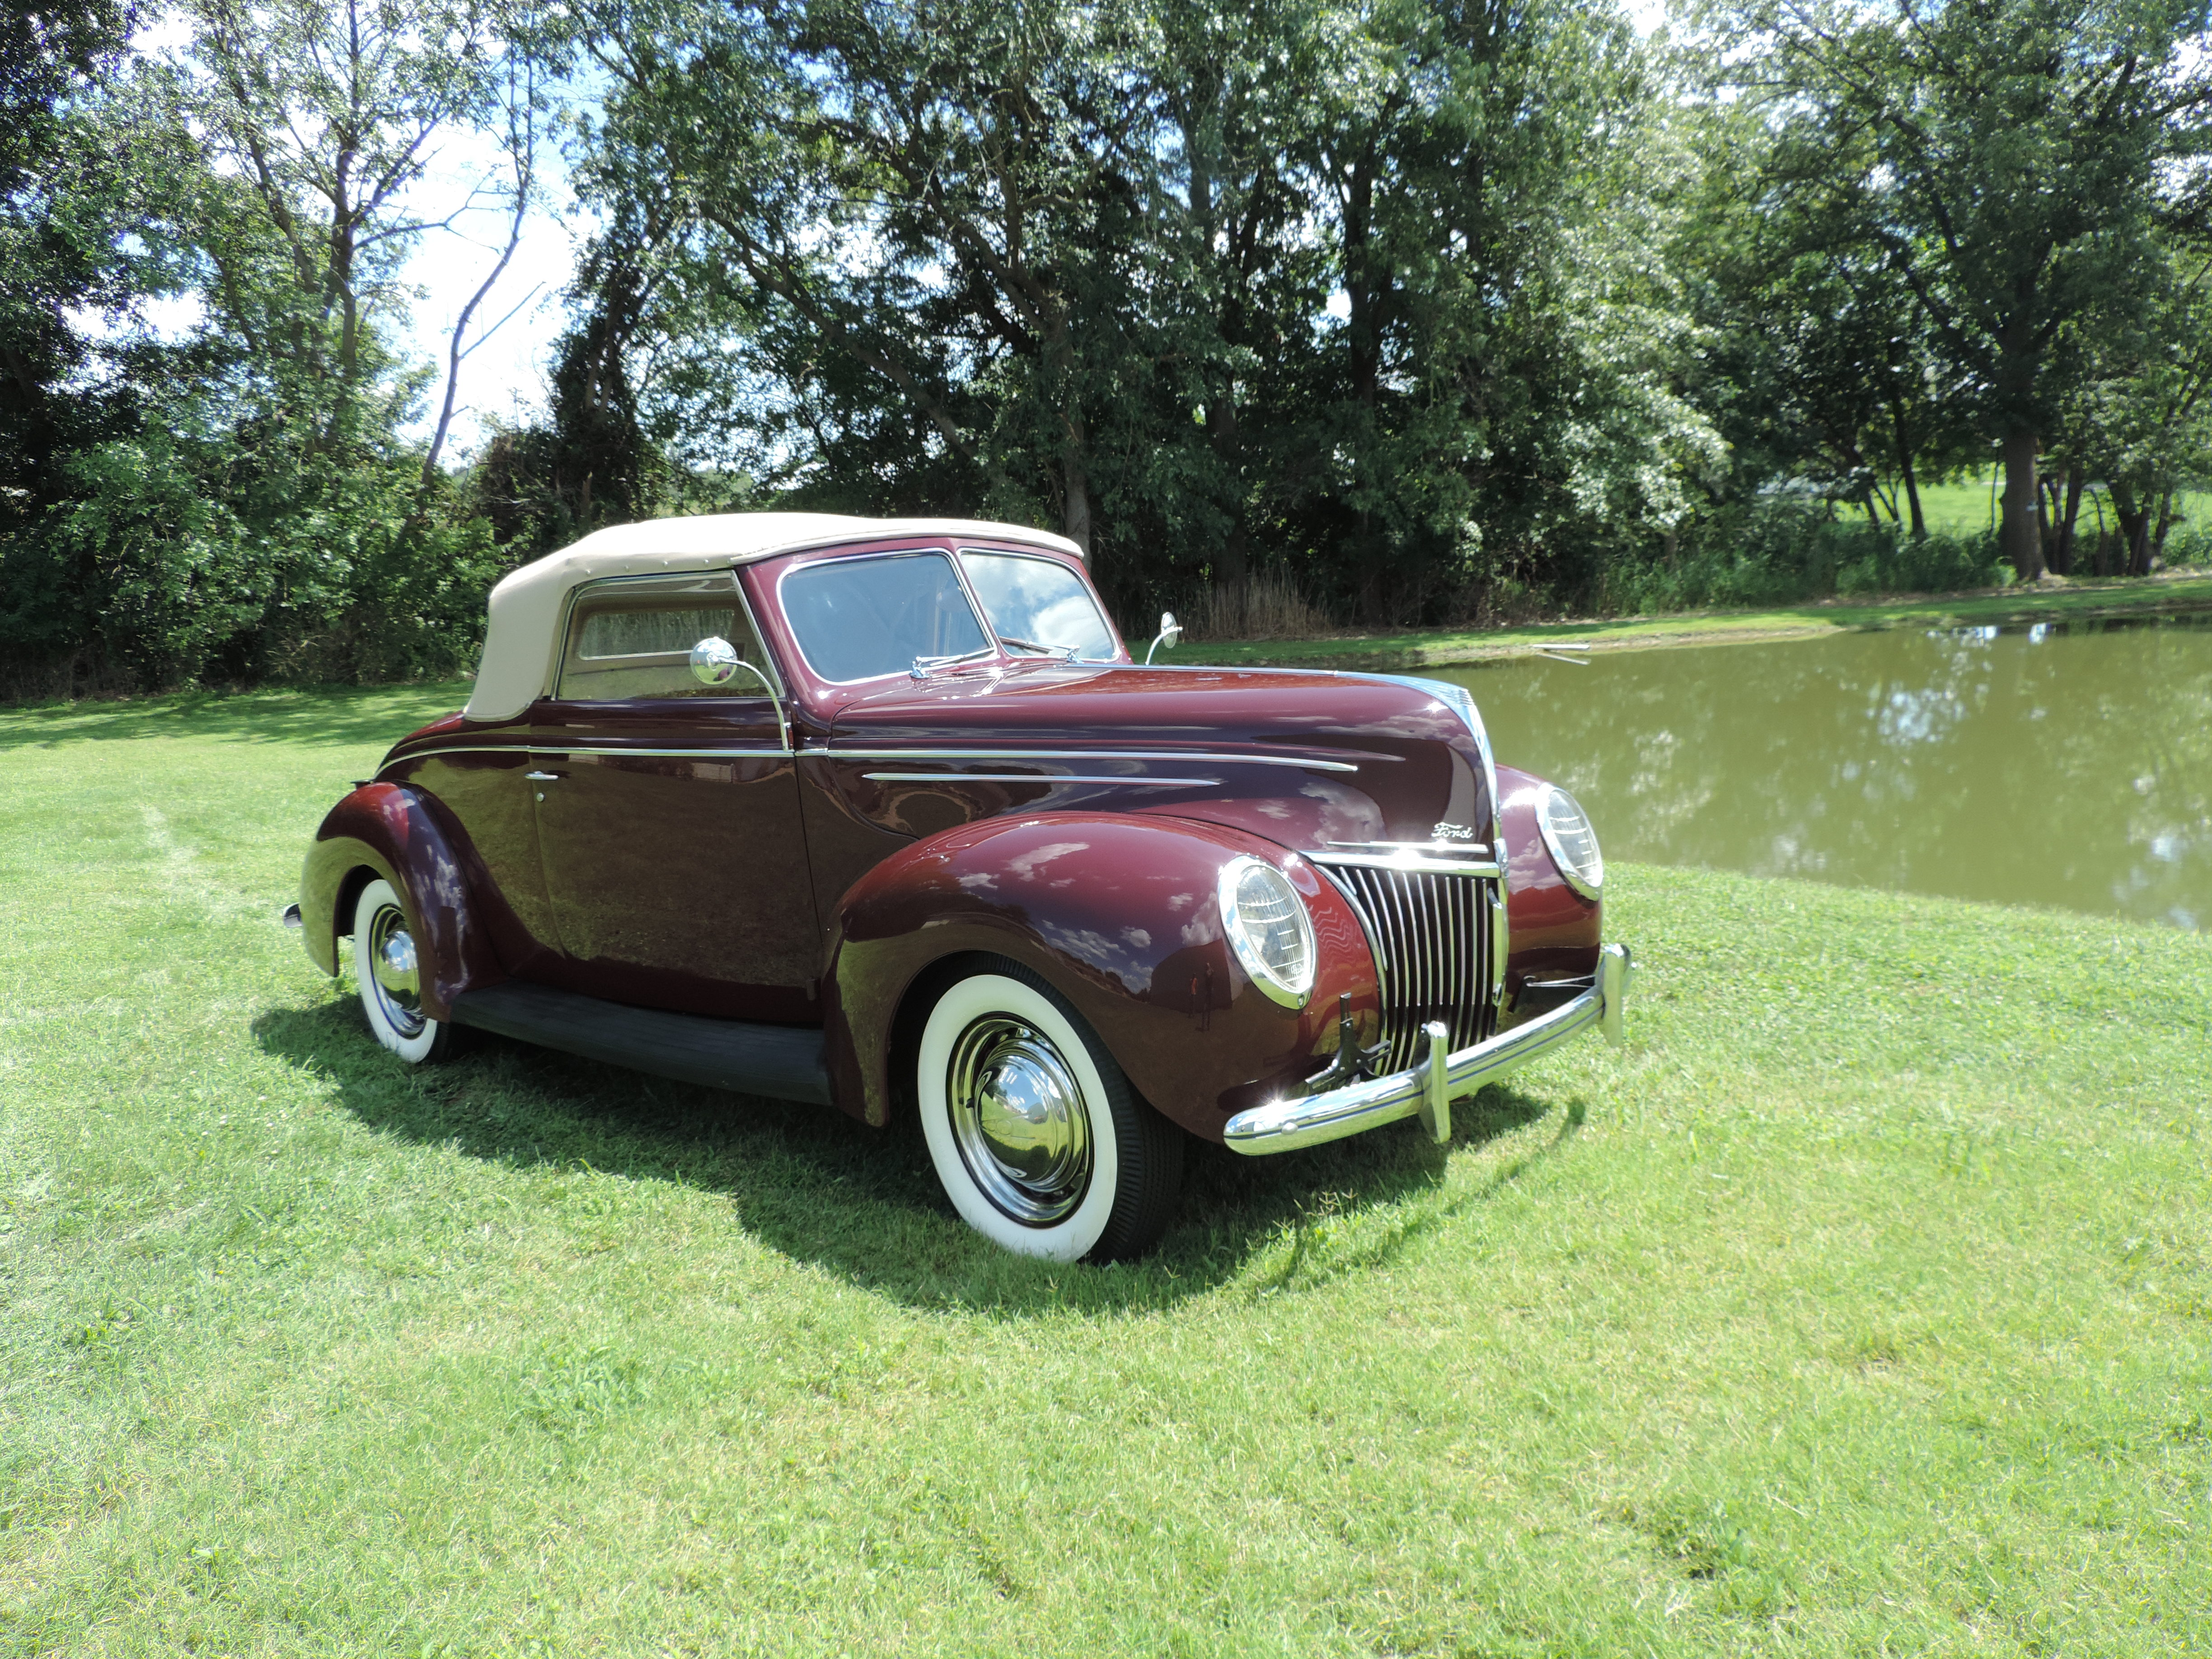 Old Chevy Cars >> 1939 Ford Deluxe Rumble Seat Convertible | Glen Weeks Classic Cars